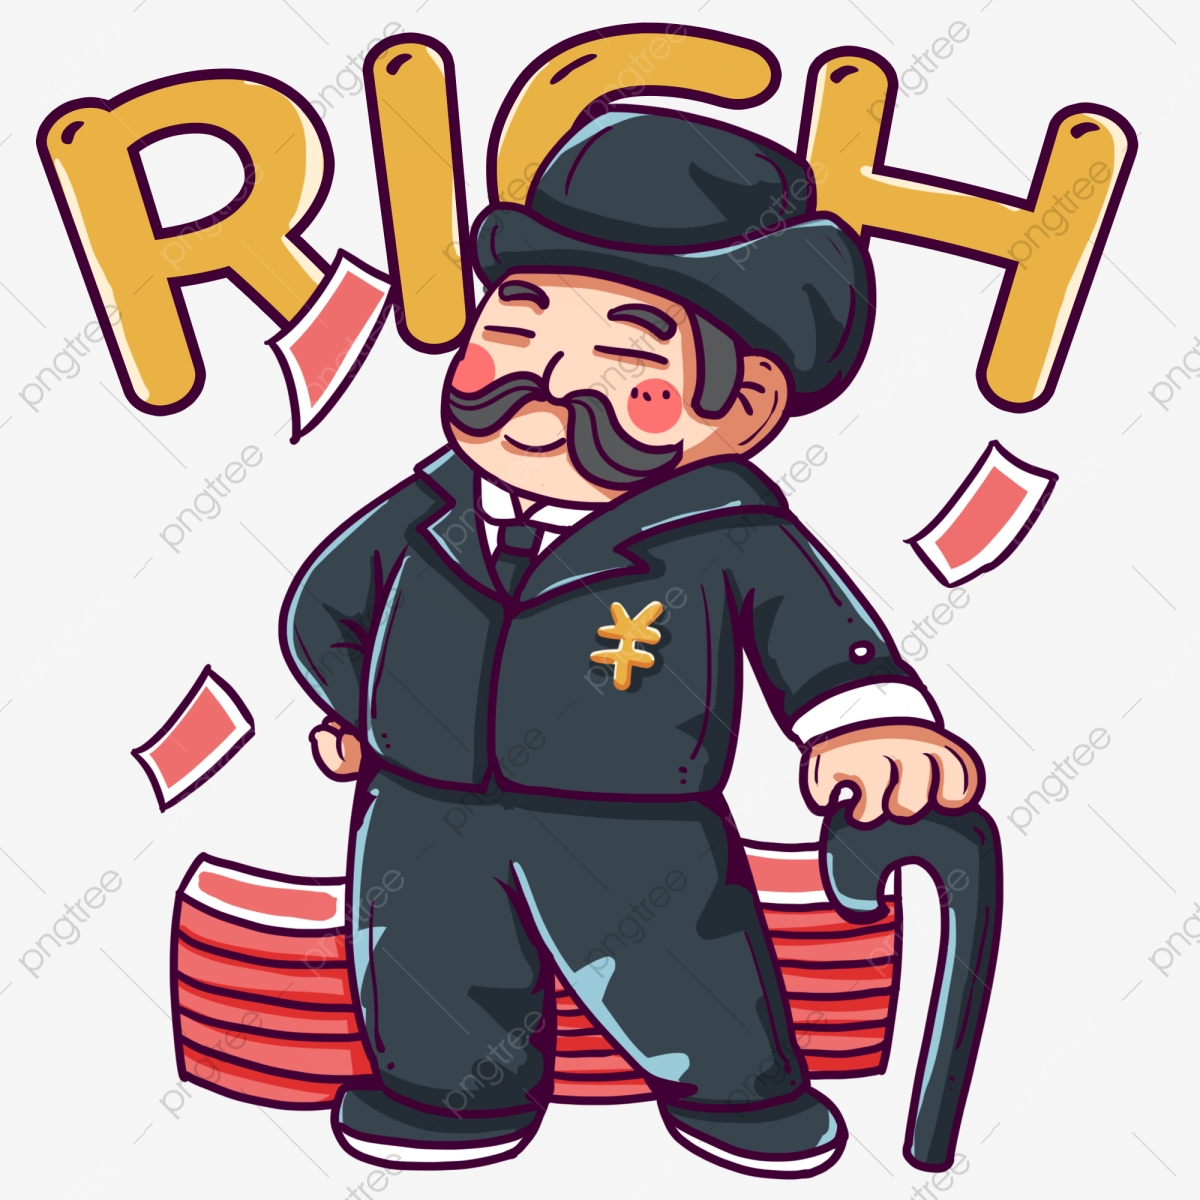 Rich Png Clipart - Rich Png - Free Transparent PNG Download - PNGkey